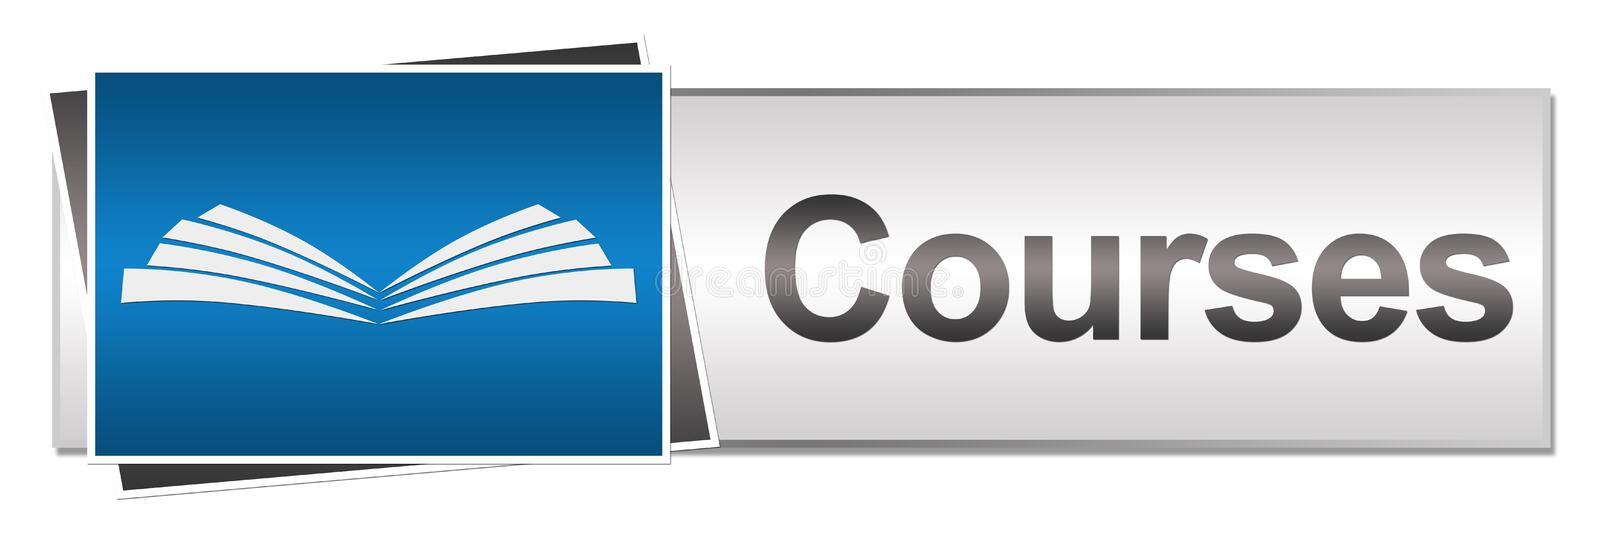 Courses Button Style. Courses concept image with educational element and text royalty free illustration